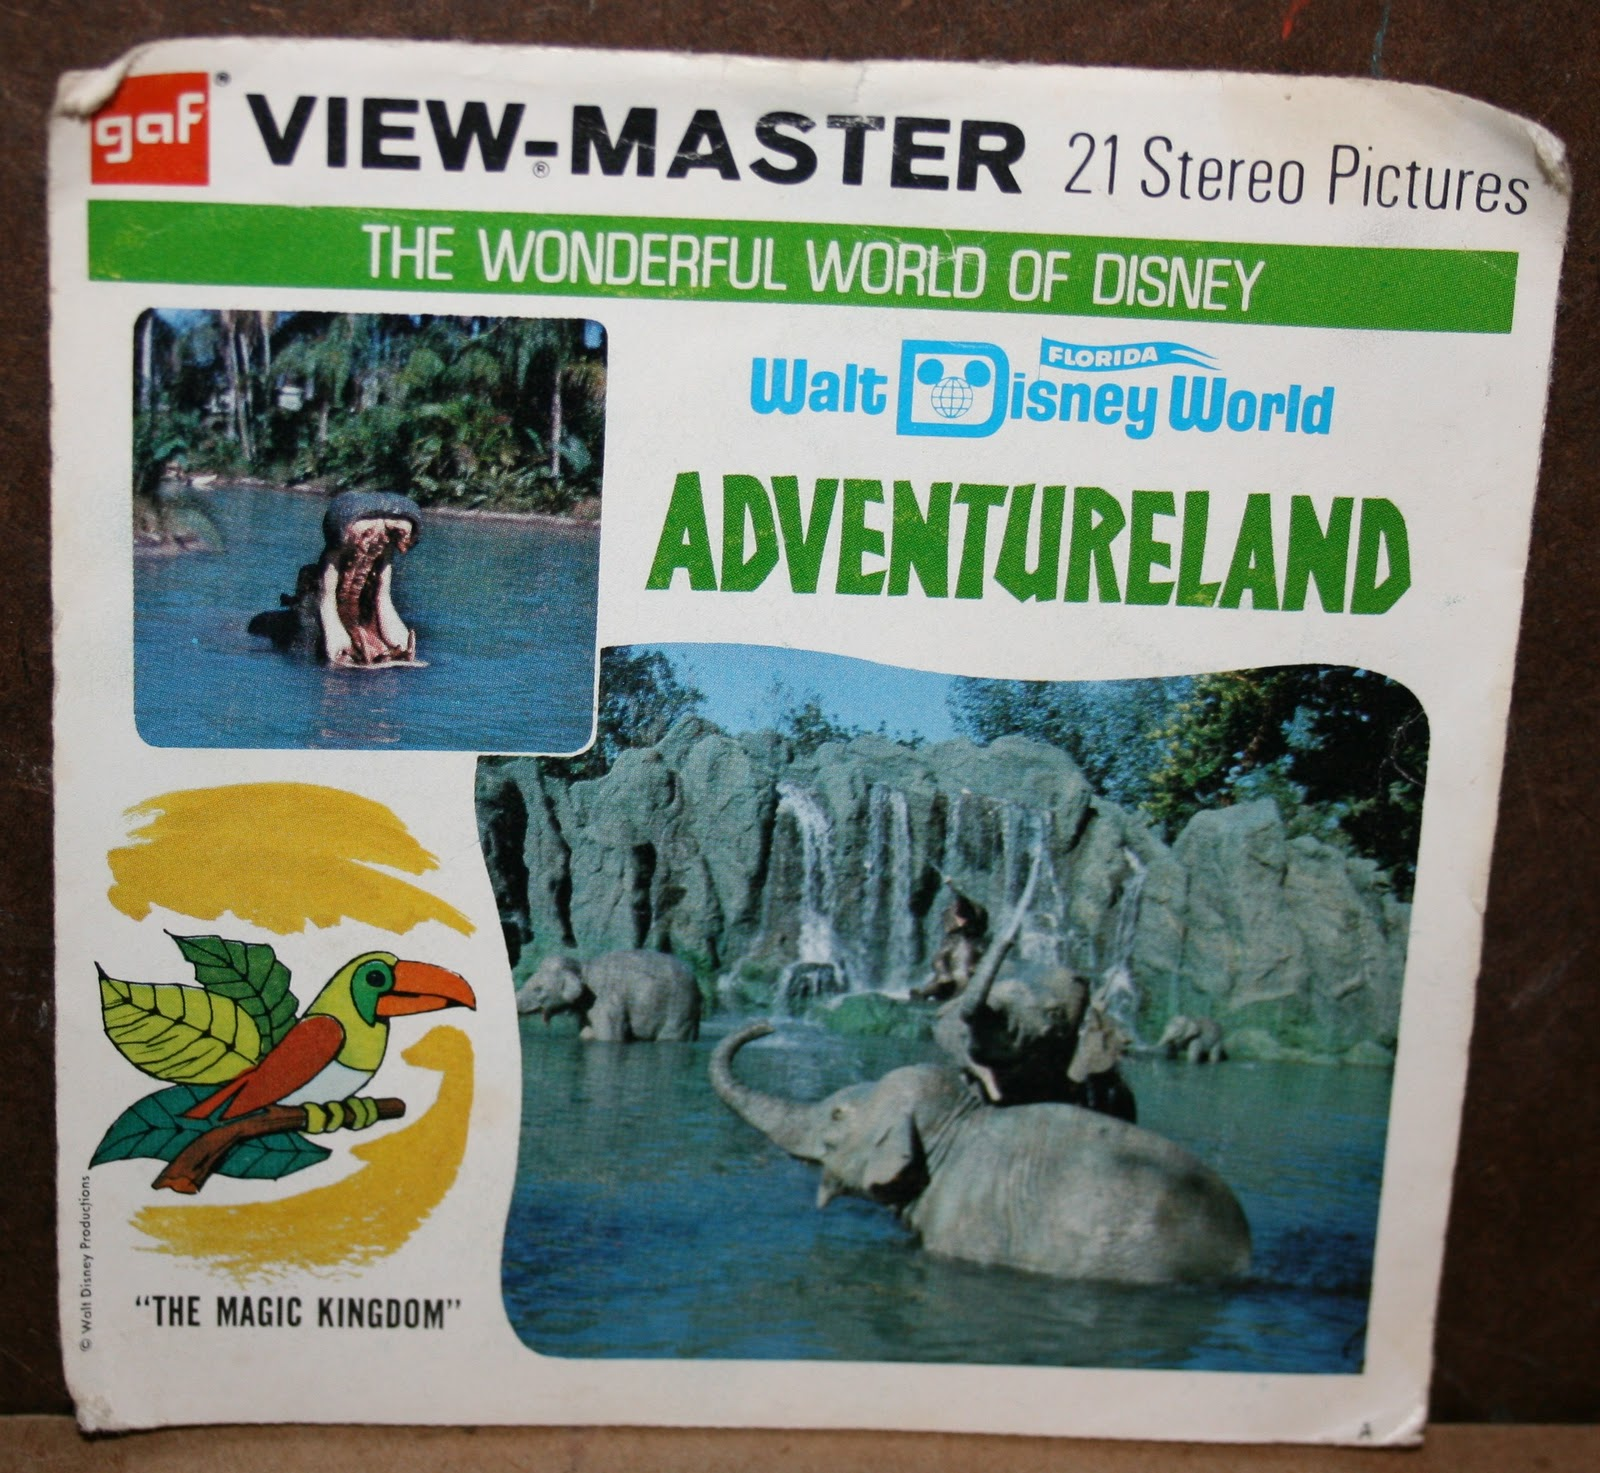 On veux le retour des VIEW MASTER sur les parcs disney  View-master disneyland Toy+Viewmaster+Reel+WDW+1